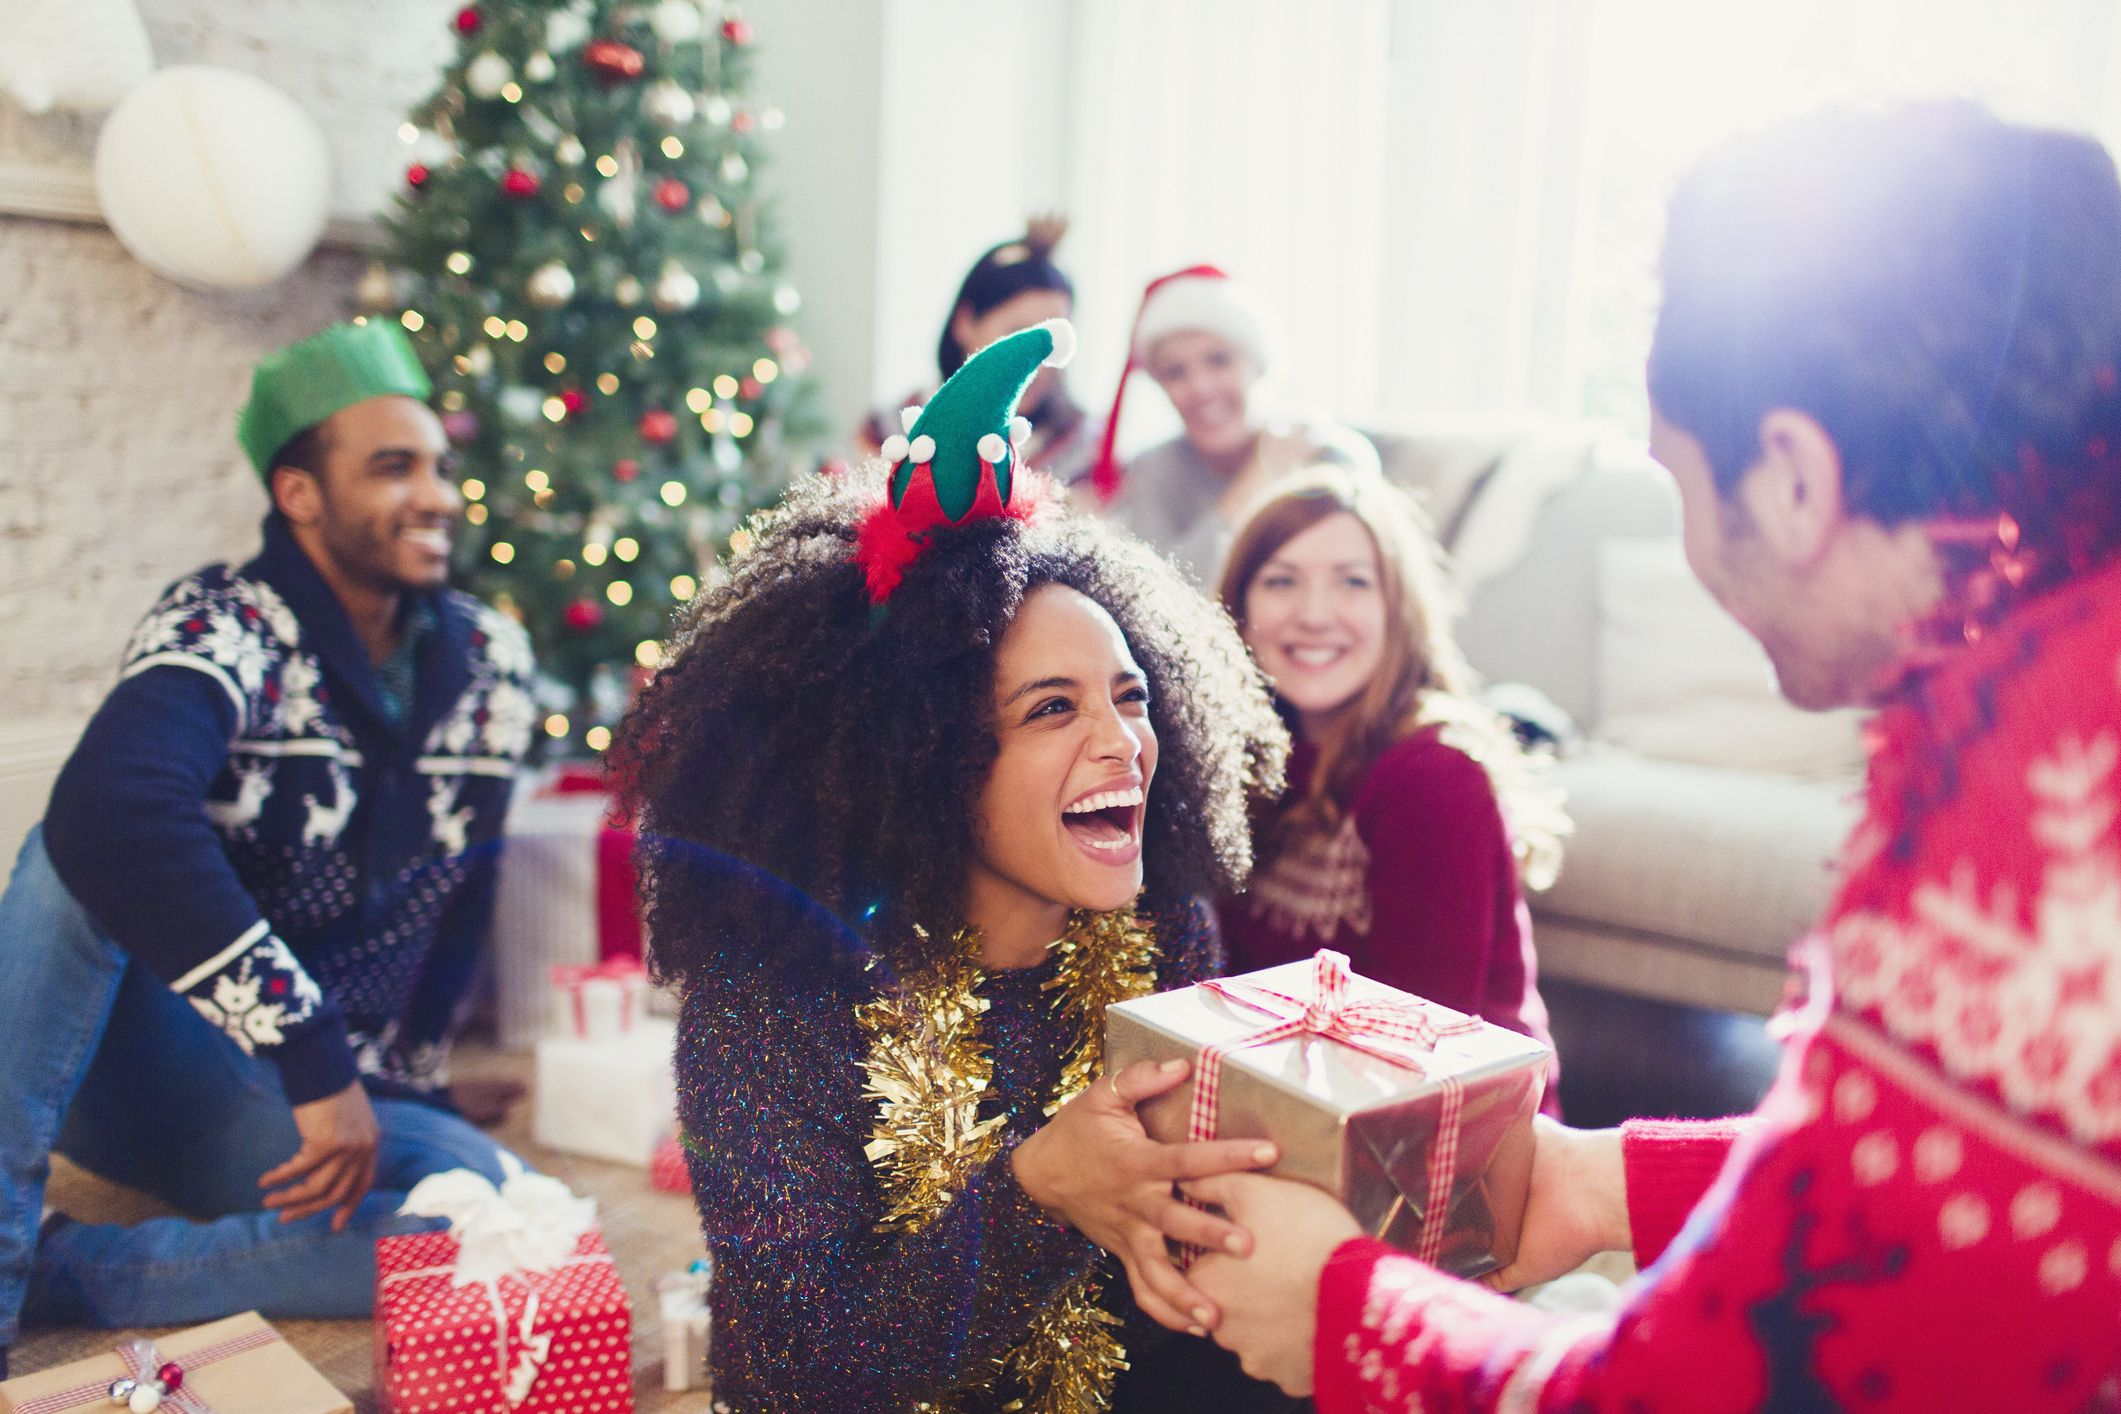 10 Fun and Festive Holiday Gift Exchange Ideas Everyone Will Enjoy